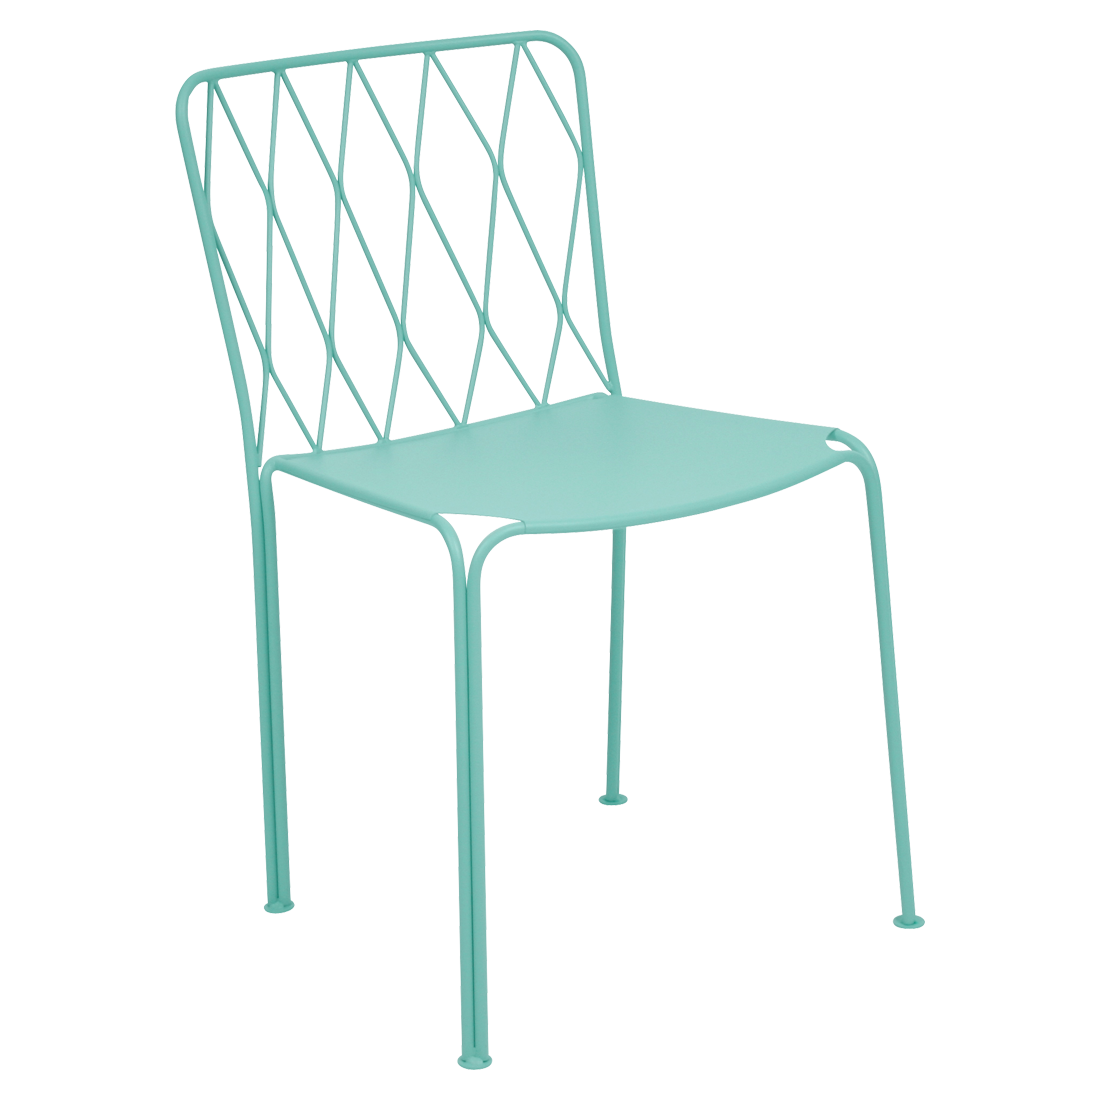 Kintbury Chair Metal Chair Outdoor Furniture